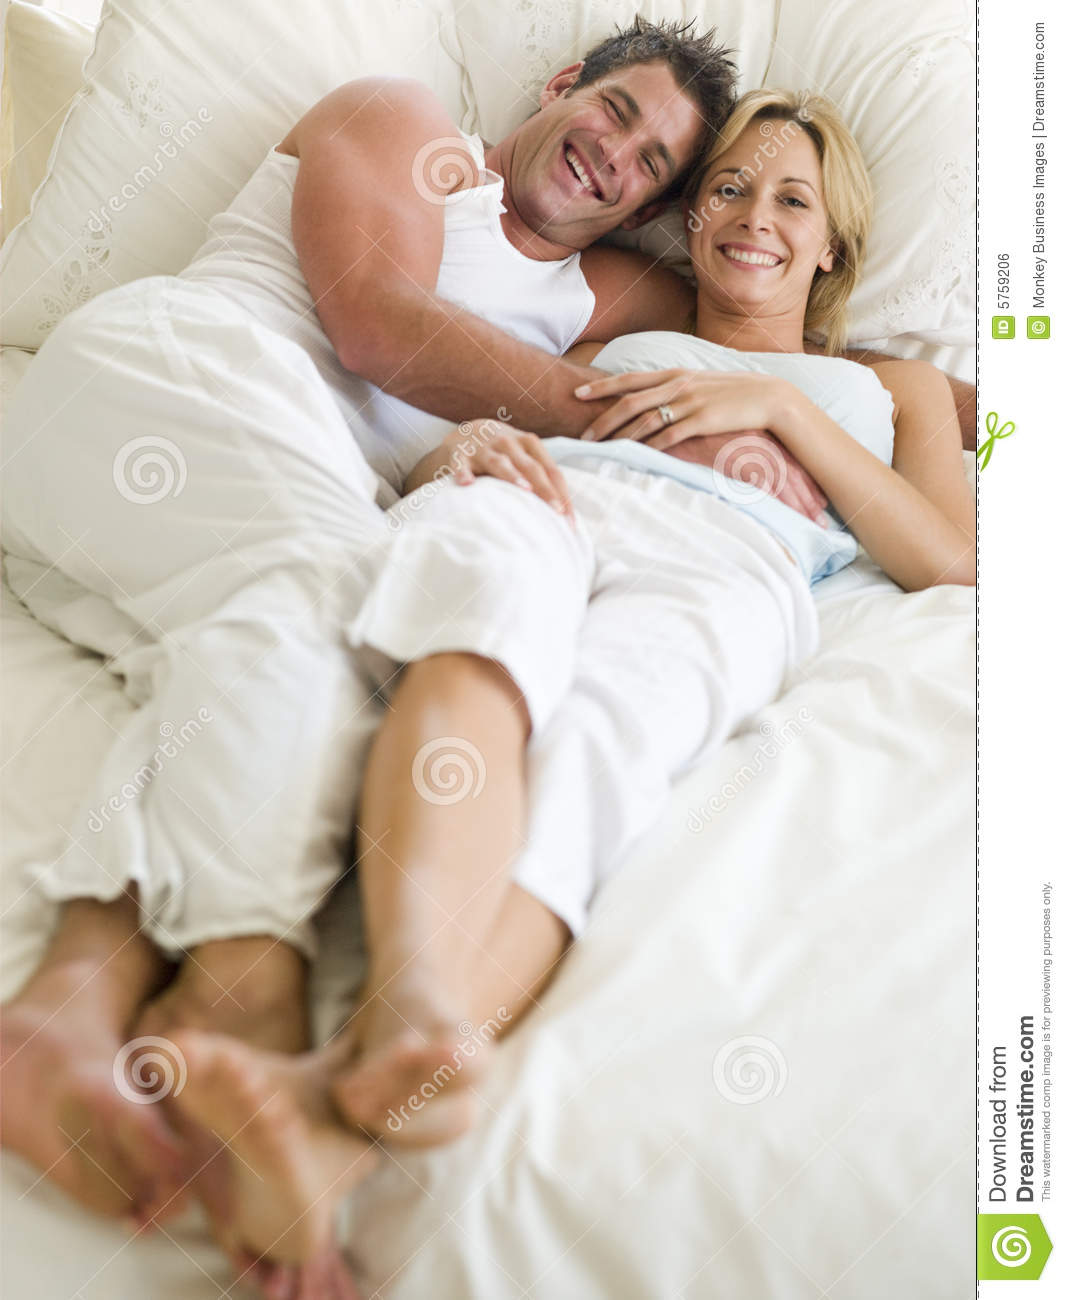 couple lying in bed smiling royalty free stock image image 5759206. Black Bedroom Furniture Sets. Home Design Ideas